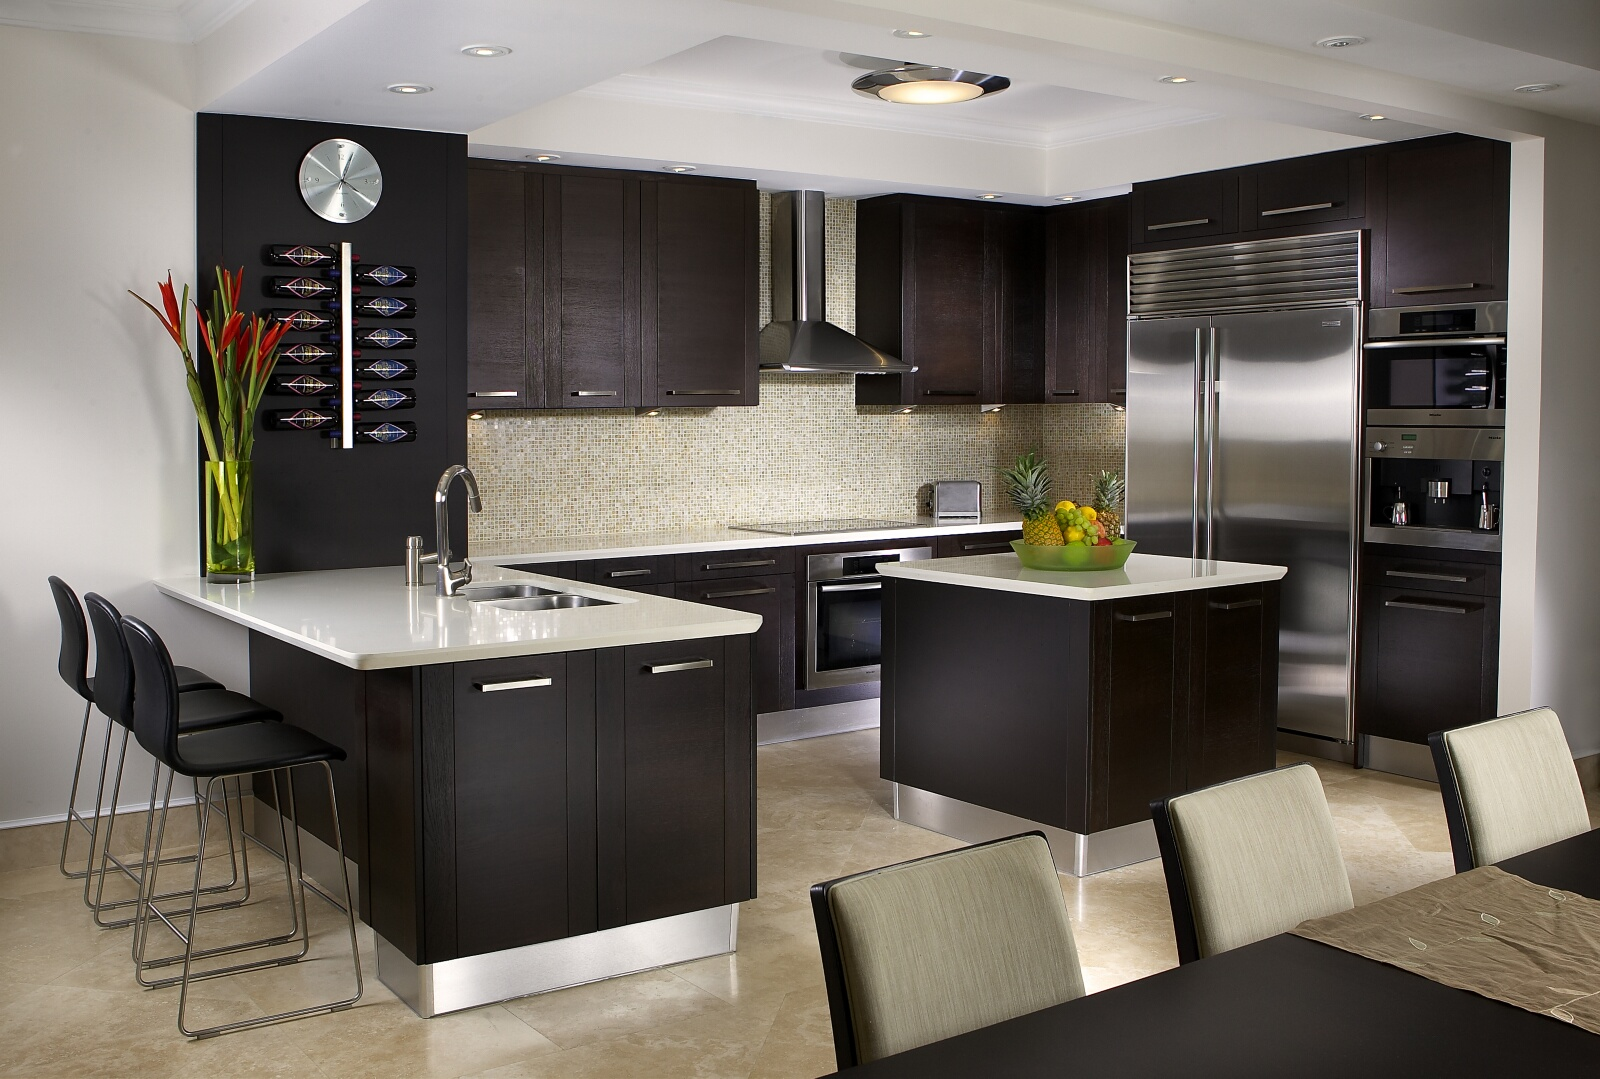 kitchen interior designer kitchen interior design services miami florida 13382